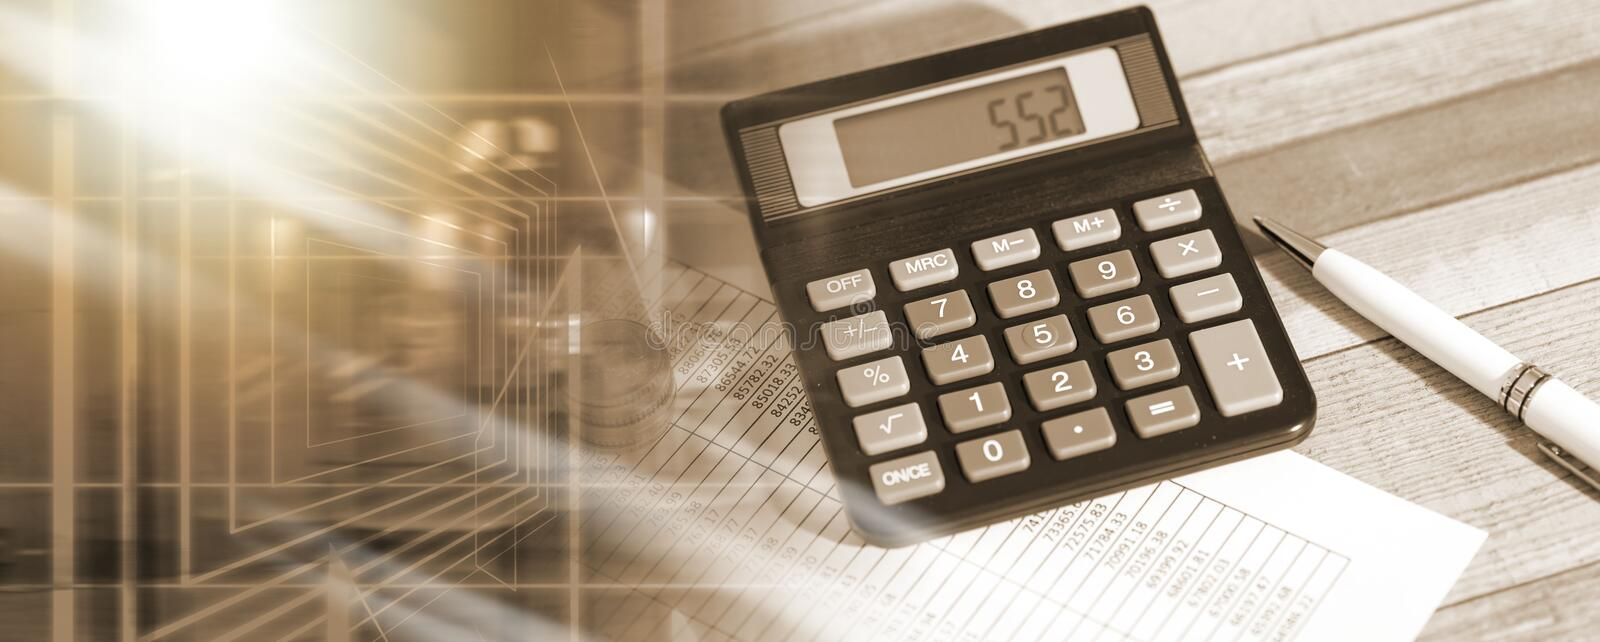 Calculator on financial documents, accounting concept; multiple exposure royalty free stock images